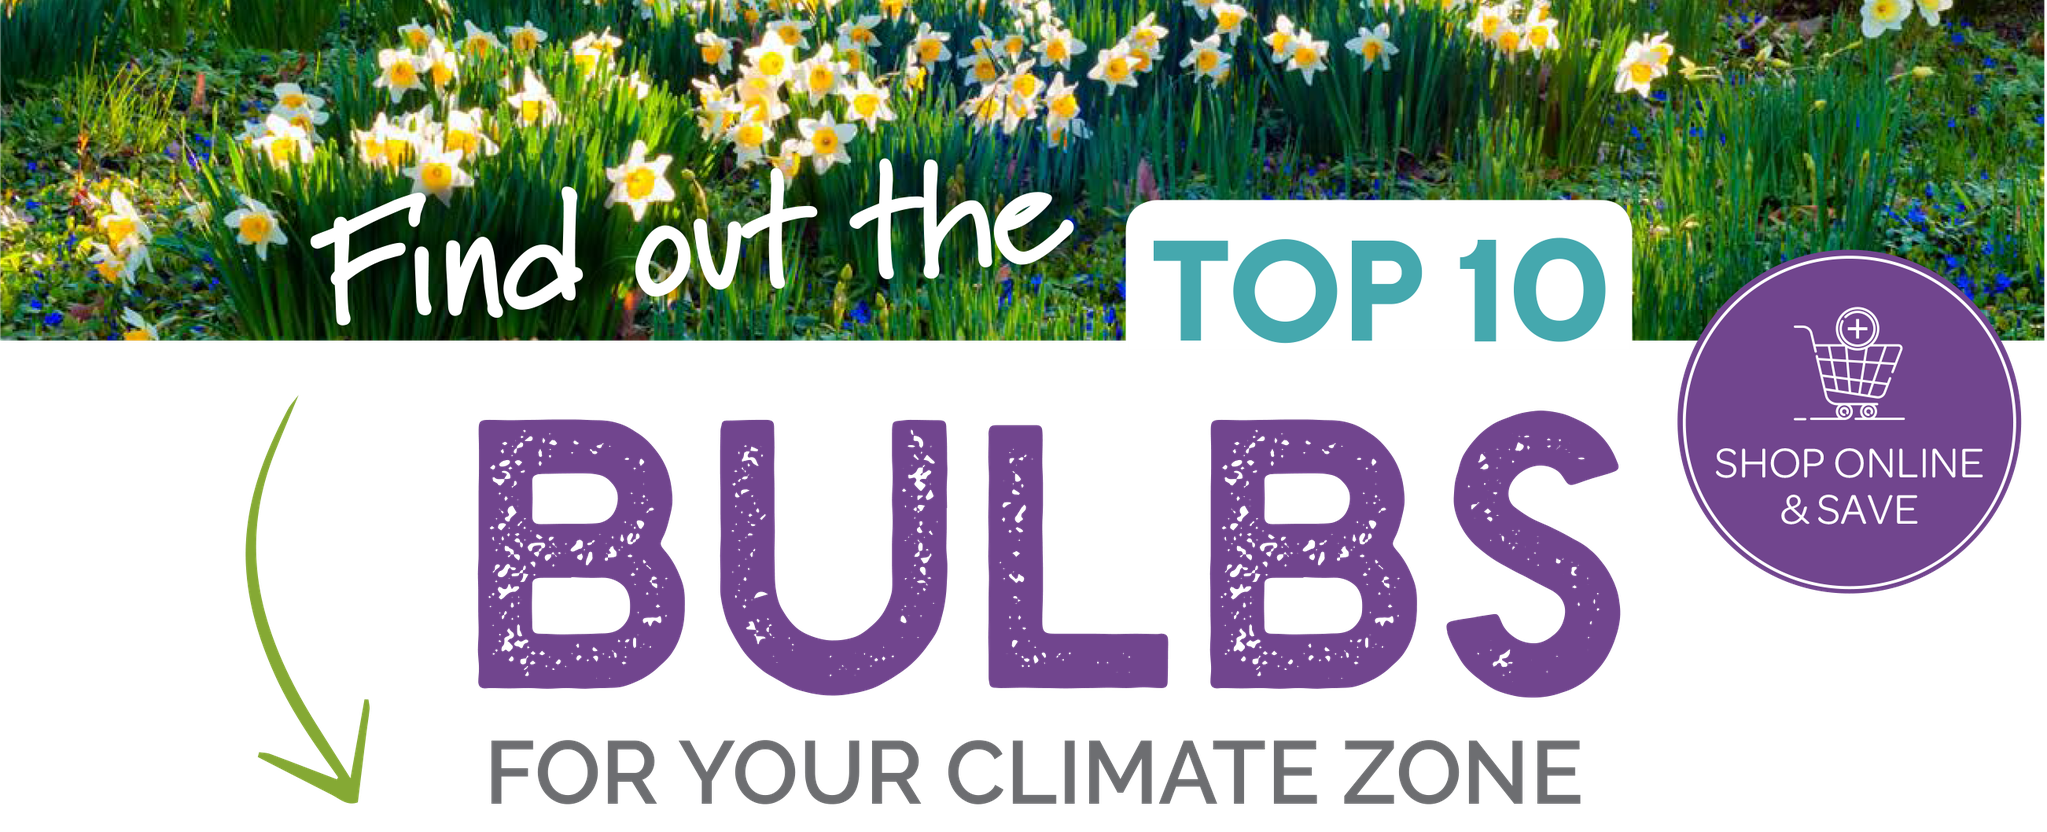 The Top 10 Bulbs for Sydney, Melbourne, Canberra, Southern Highlands, Adelaide, Brisbane